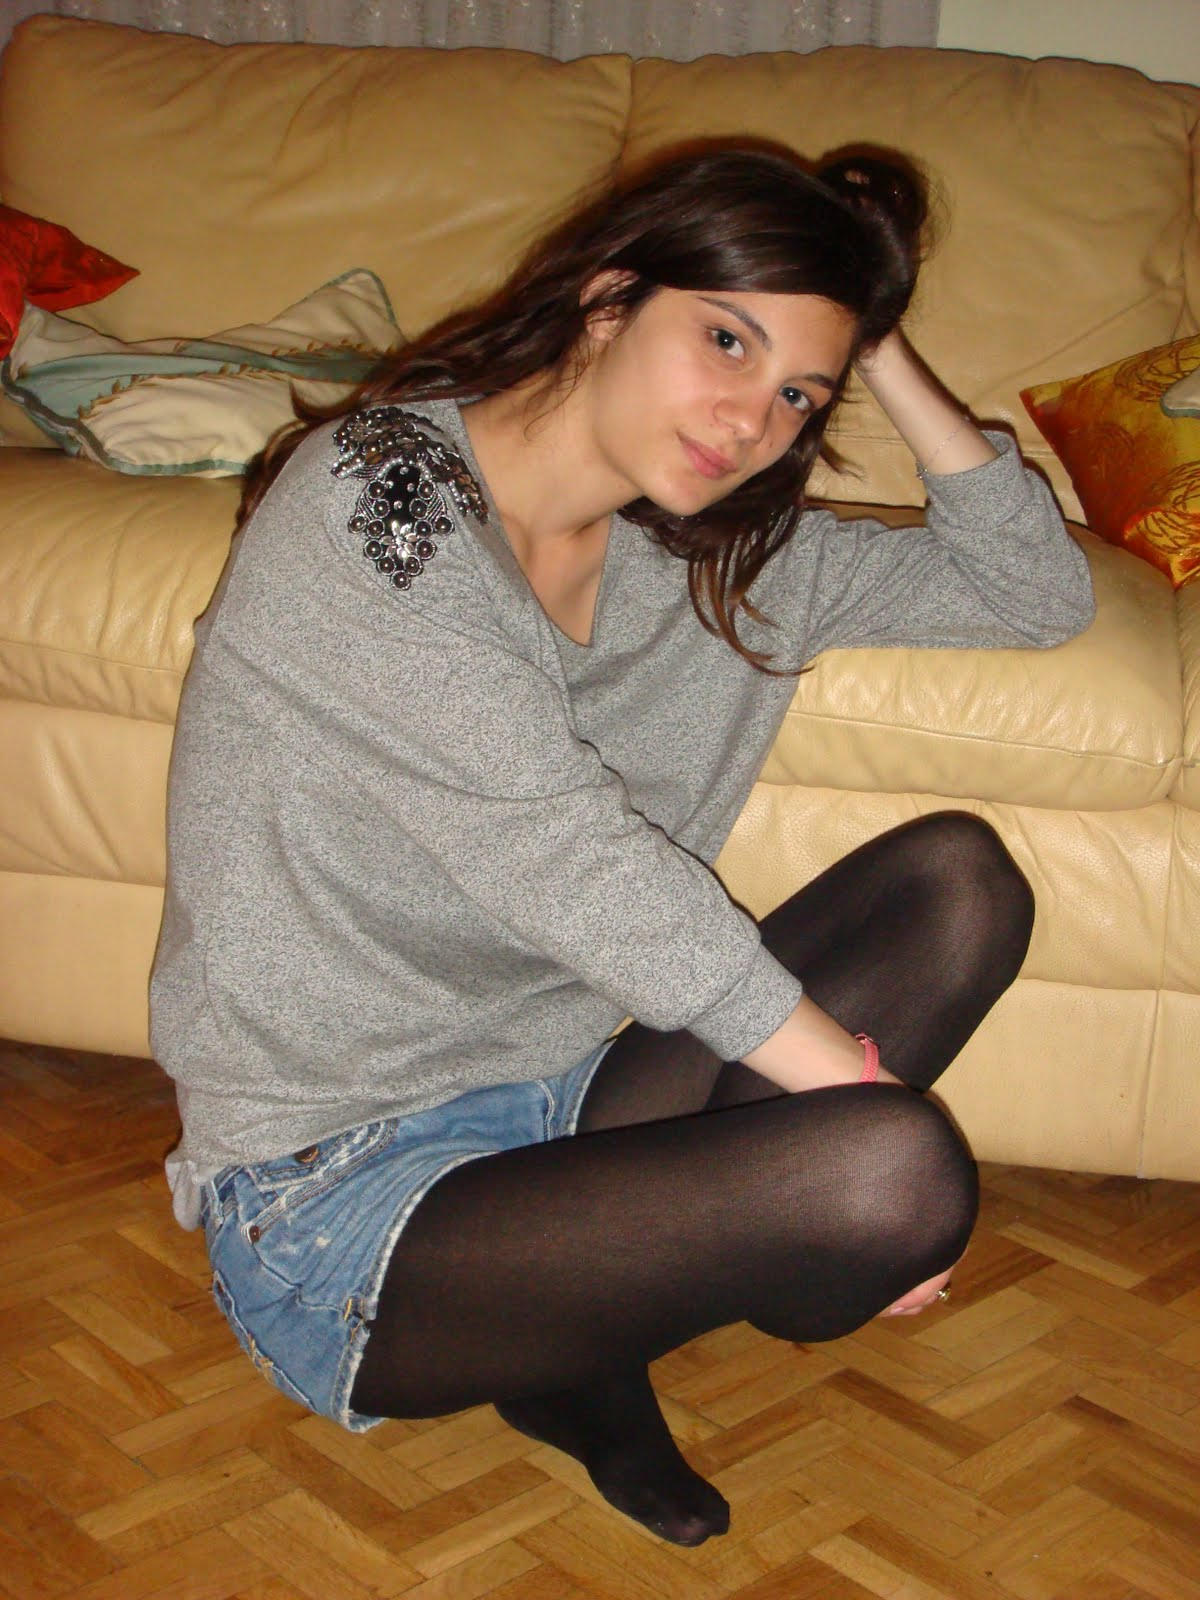 Adult Clip All time greatest anal gapes torrent